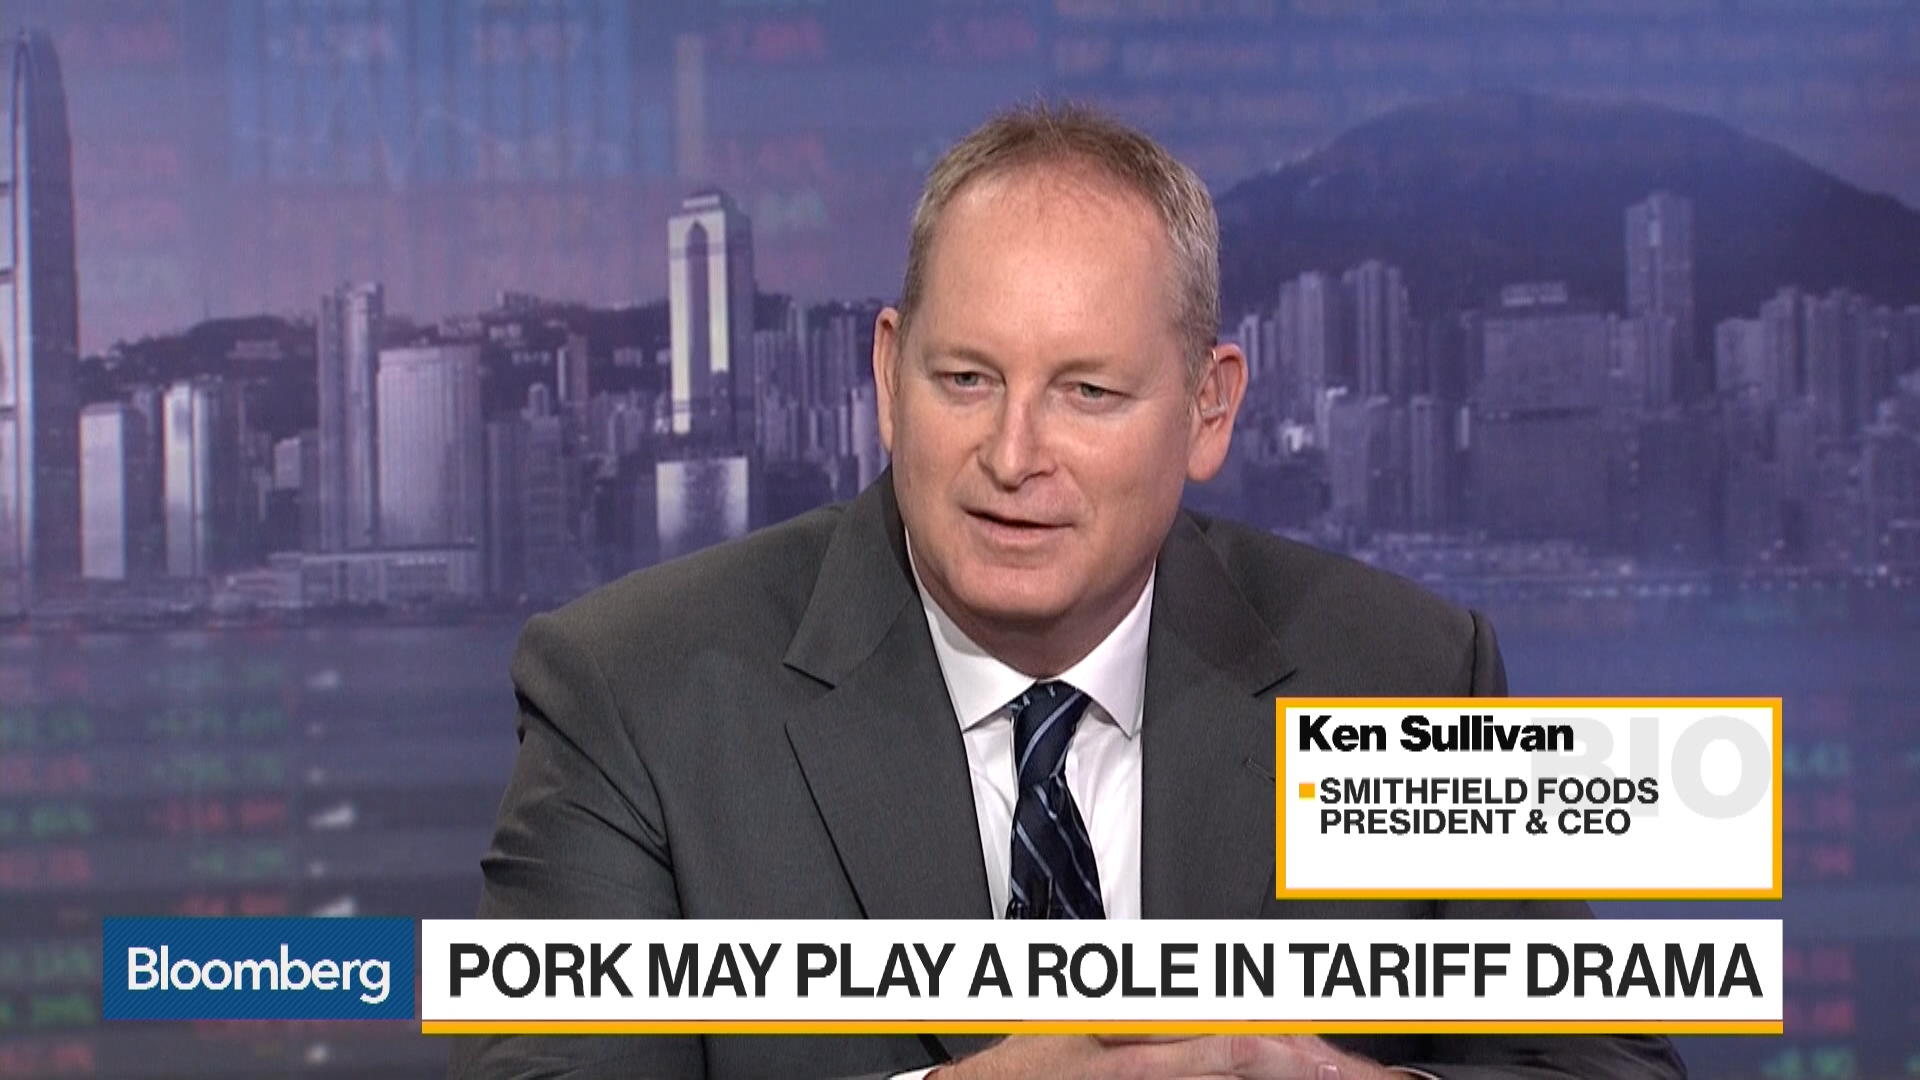 Smithfield Foods CEO Calls Dialogue Around Trade Issues